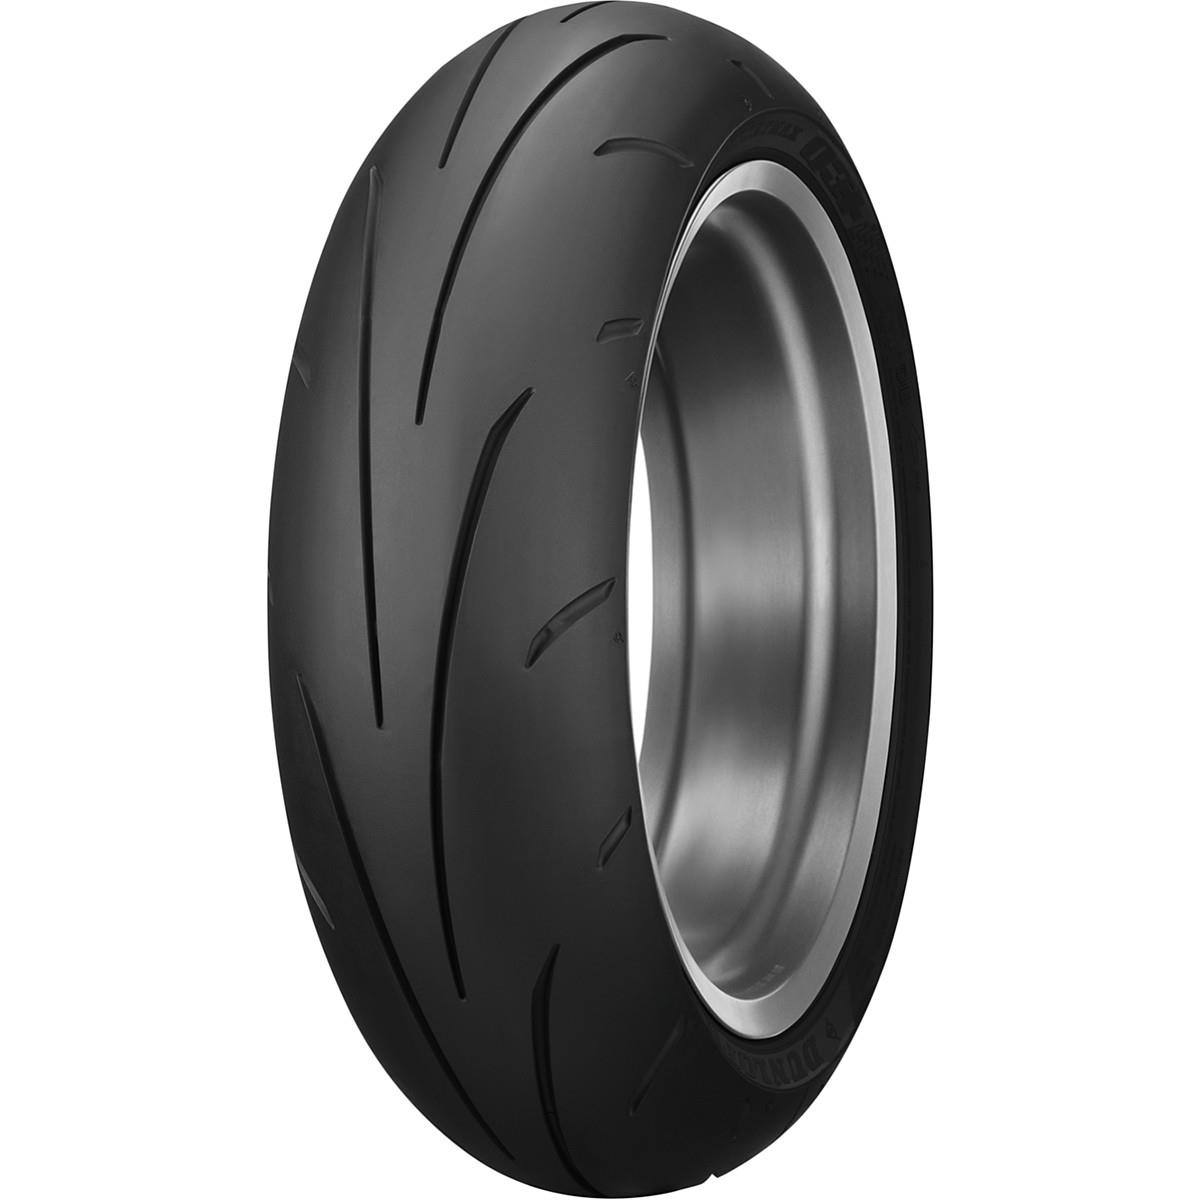 Sportmax Q3 Rear Tire For Sale In Aurora Co Motorcycle Depot Suzuki Gsx 750 Ae Scrambler 720 277 3583